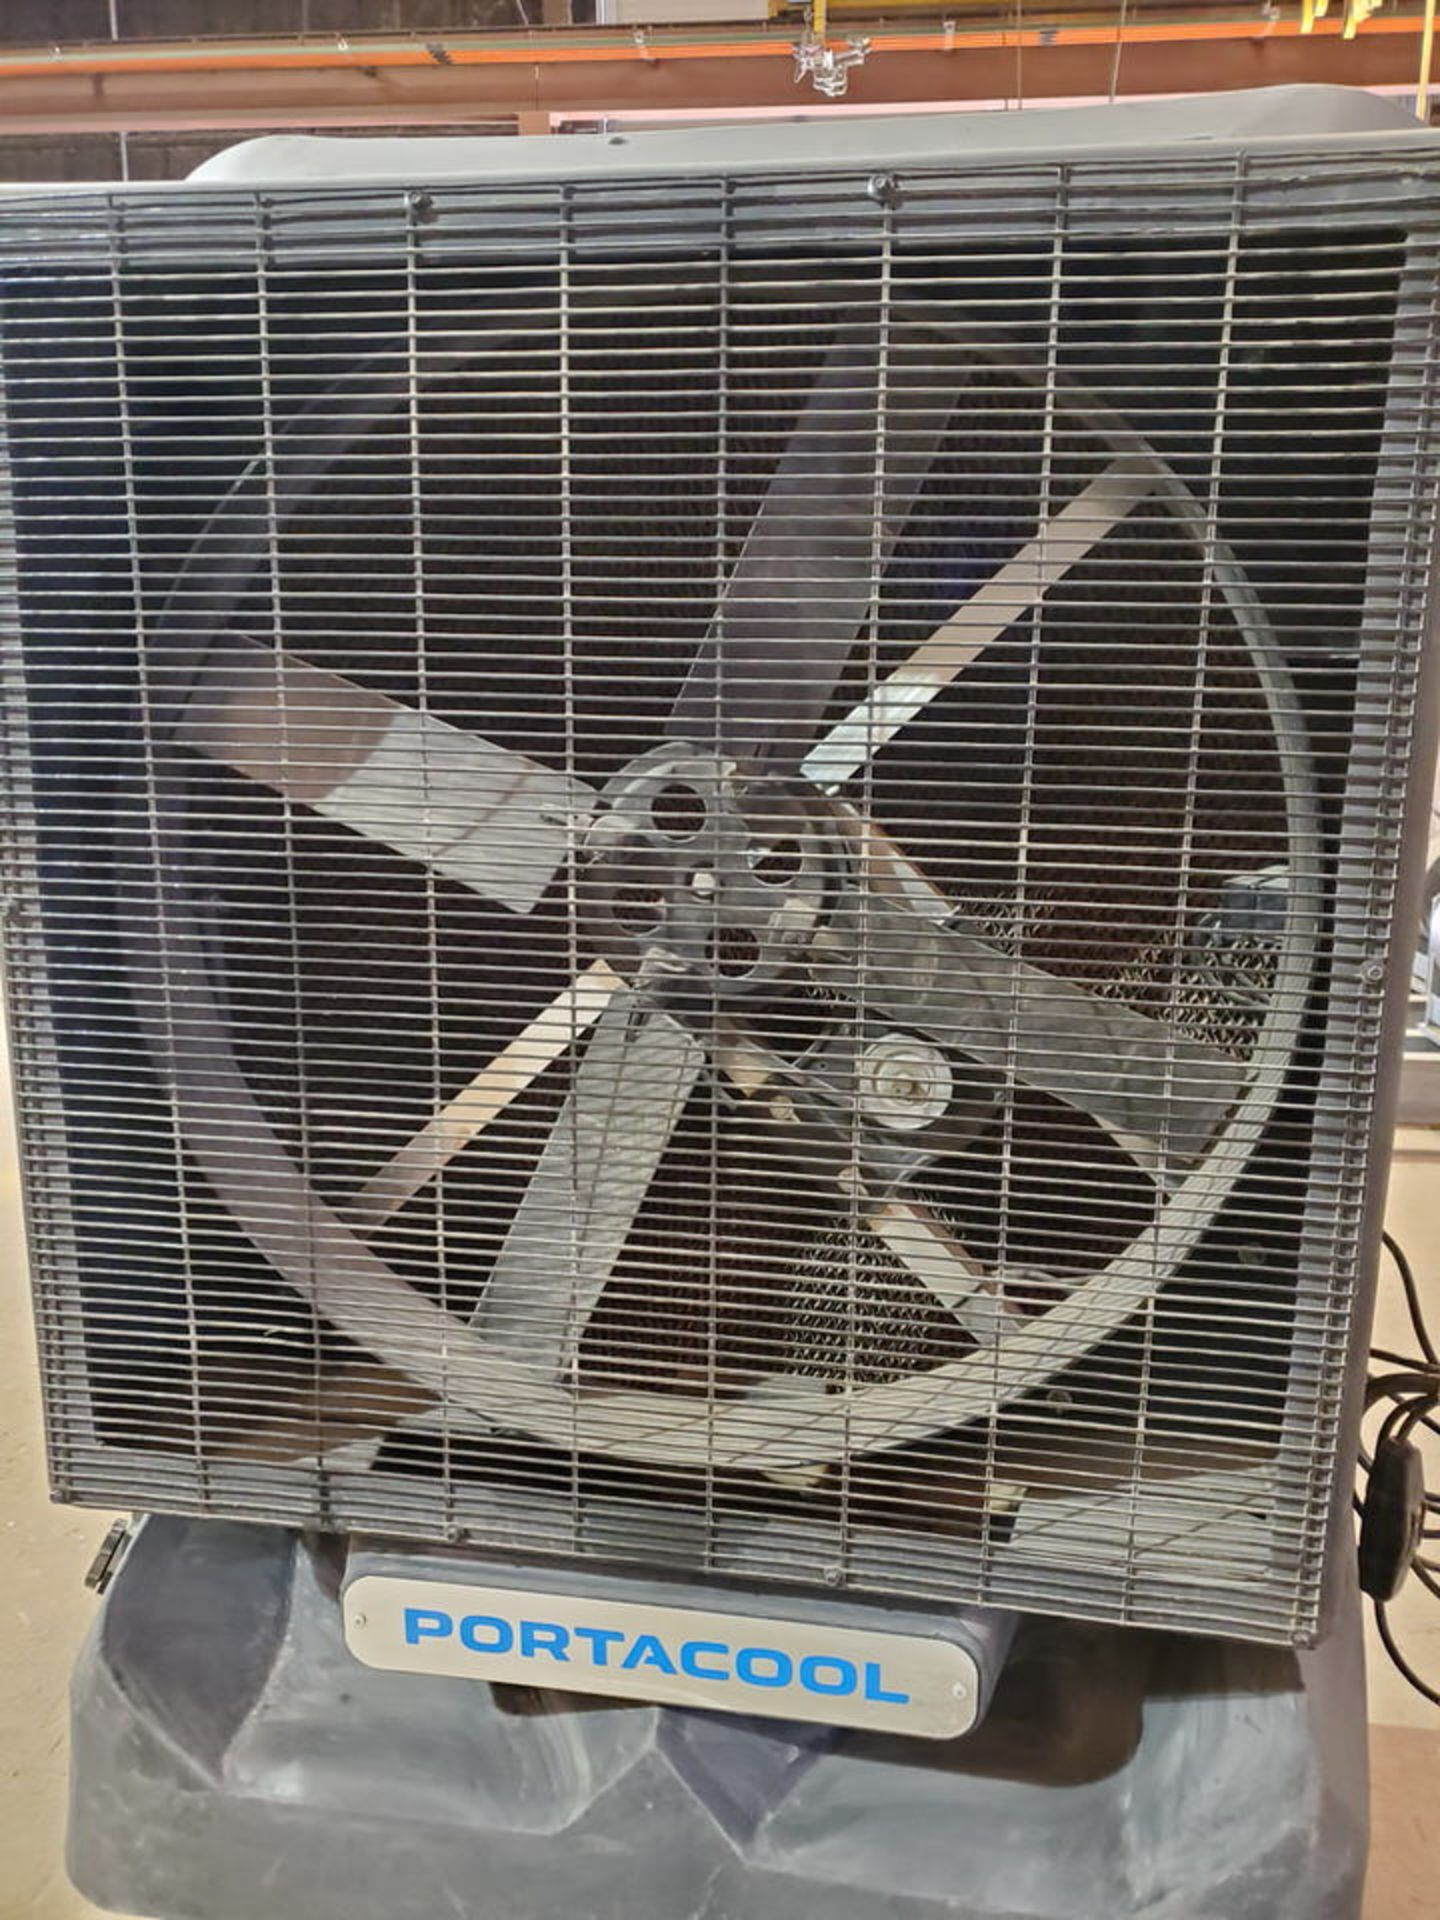 Portacool Cyclone 160 Portable Evaporative Cooler 115V, 60HZ, 7.3A - Image 5 of 7